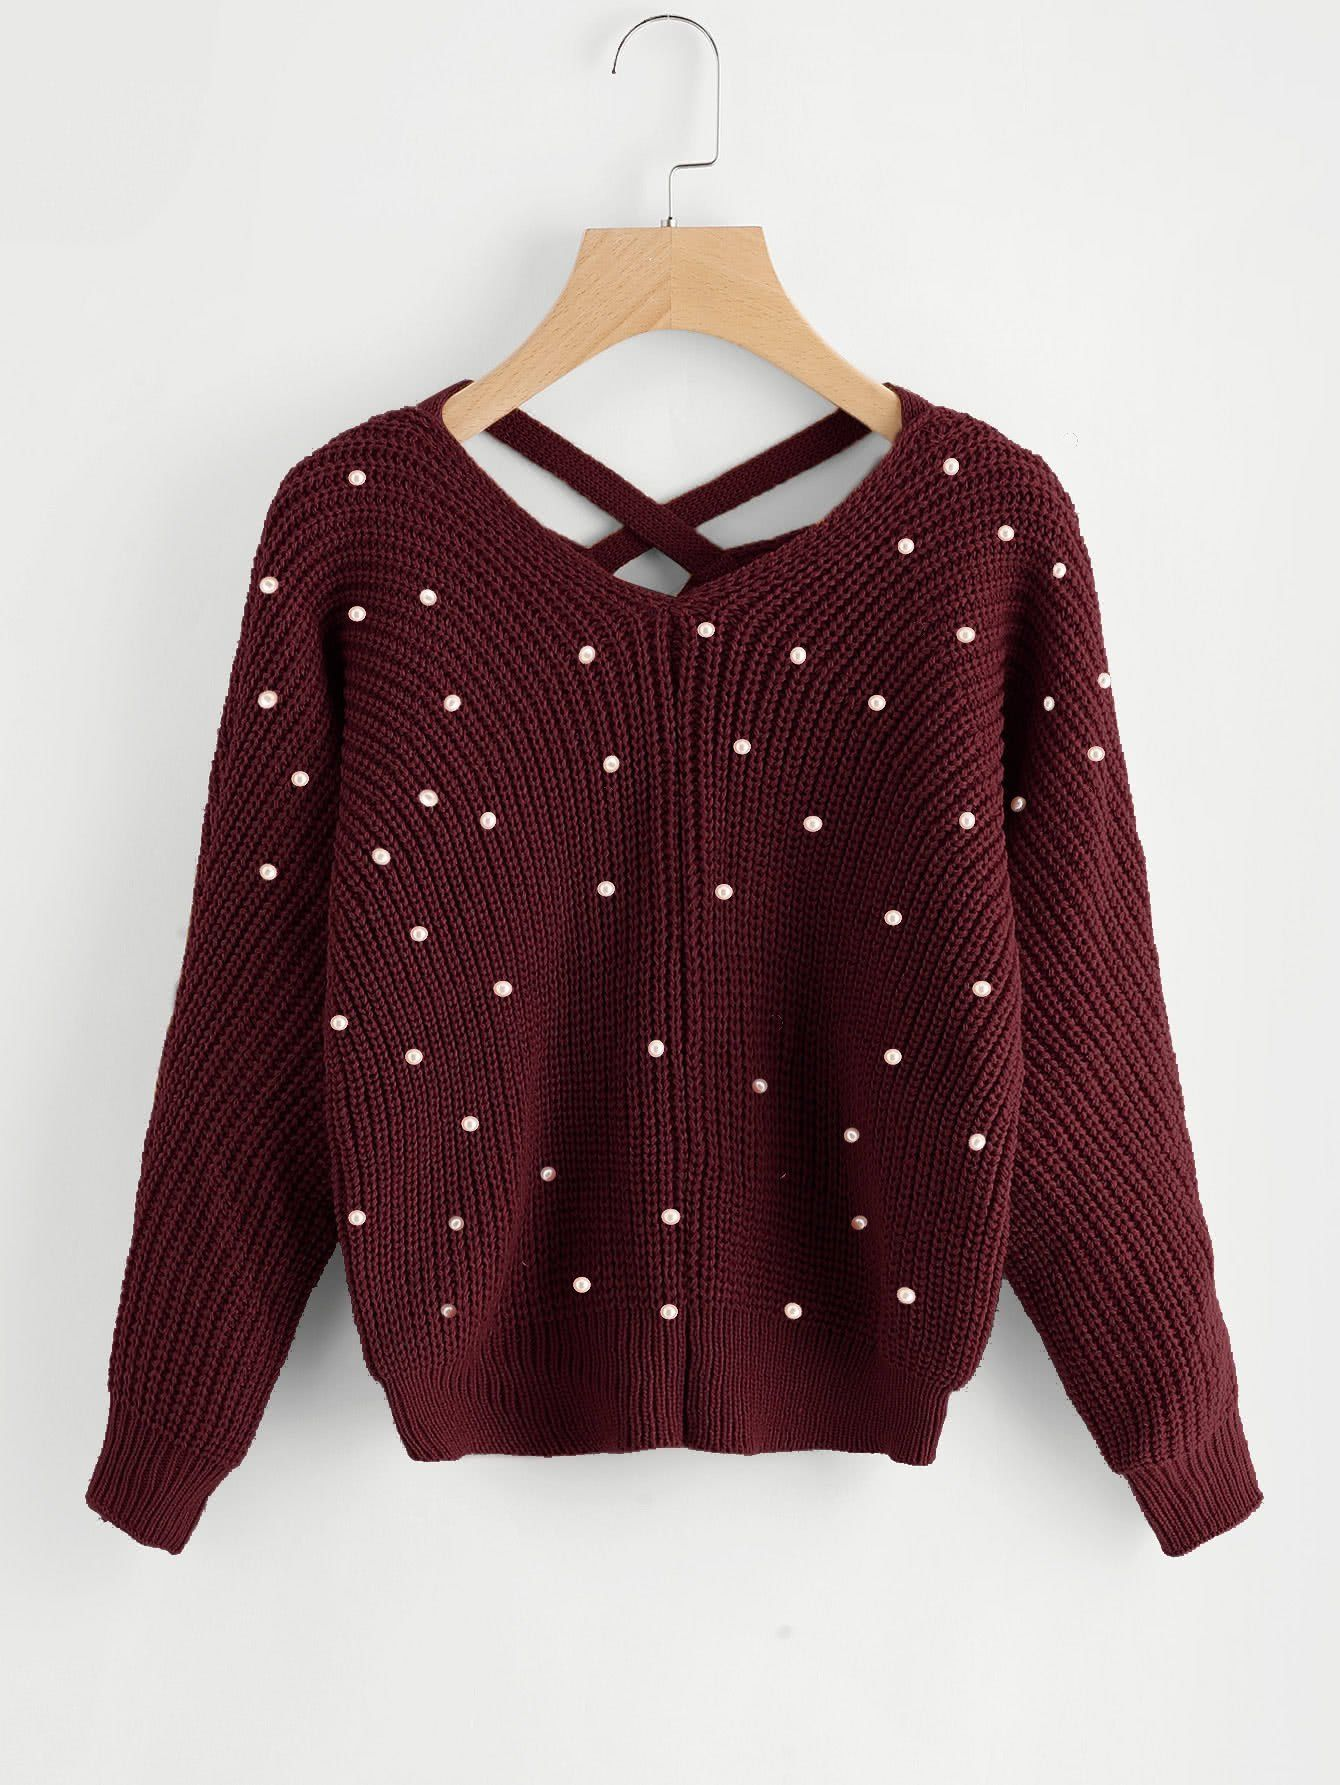 39d4f083e0ce4 Pearl detail knitted sweater in 2019